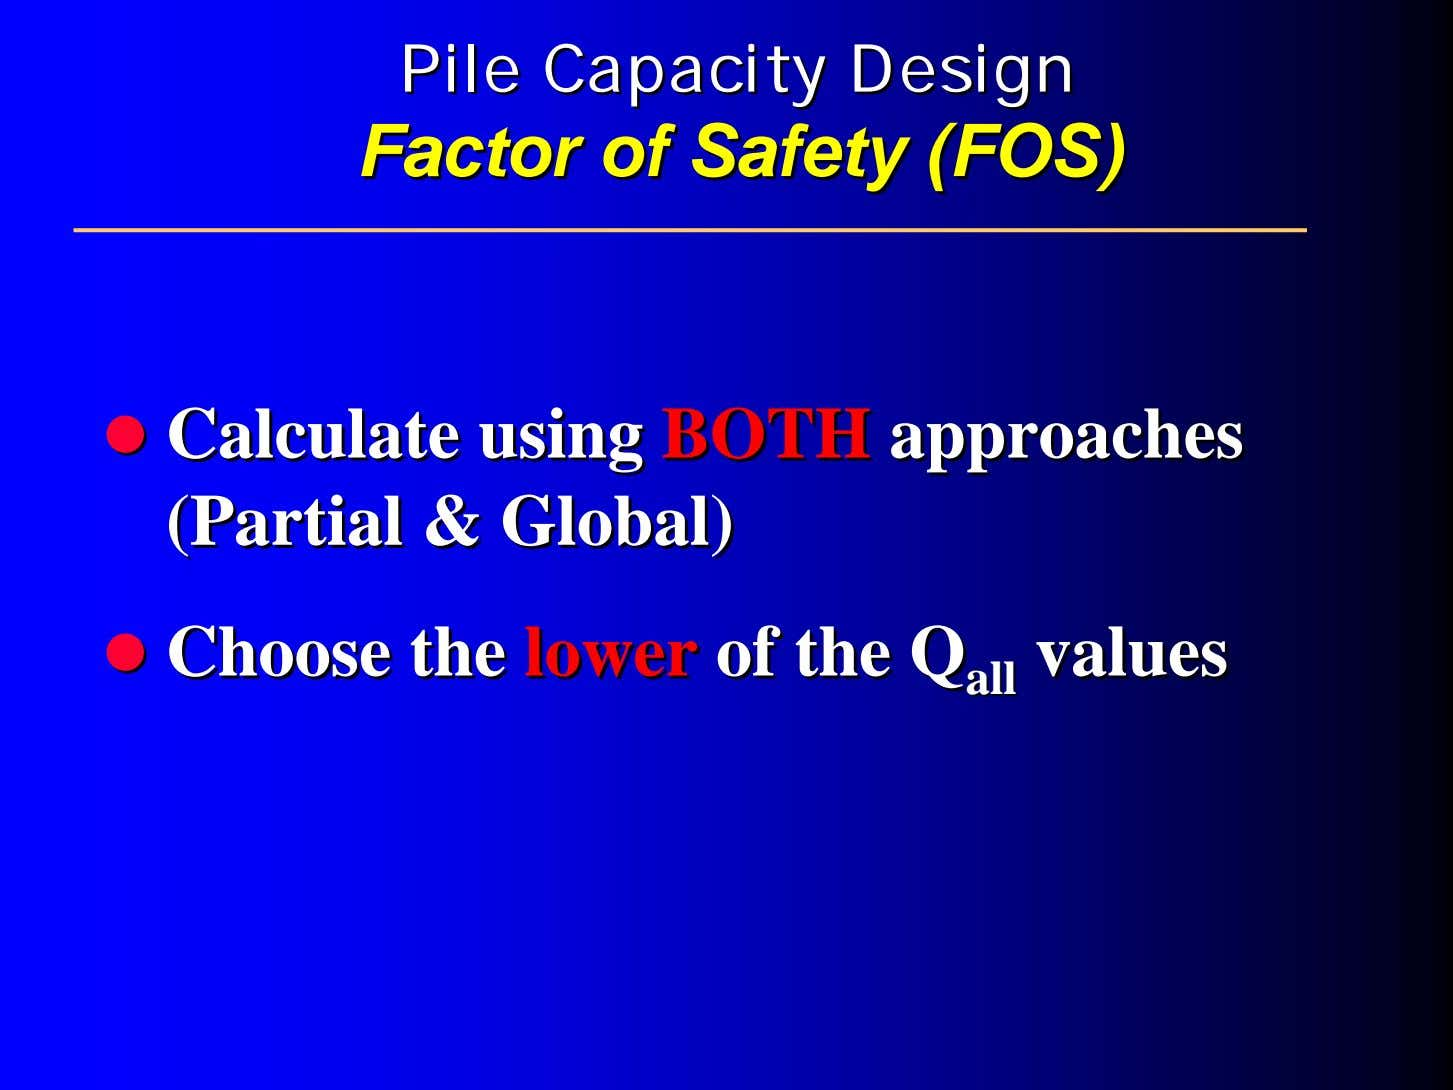 PilePile CapacityCapacity DesignDesign FactorFactor ofof SafetySafety (FOS)(FOS) CalculateCalculate usingusing BOTHBOTH